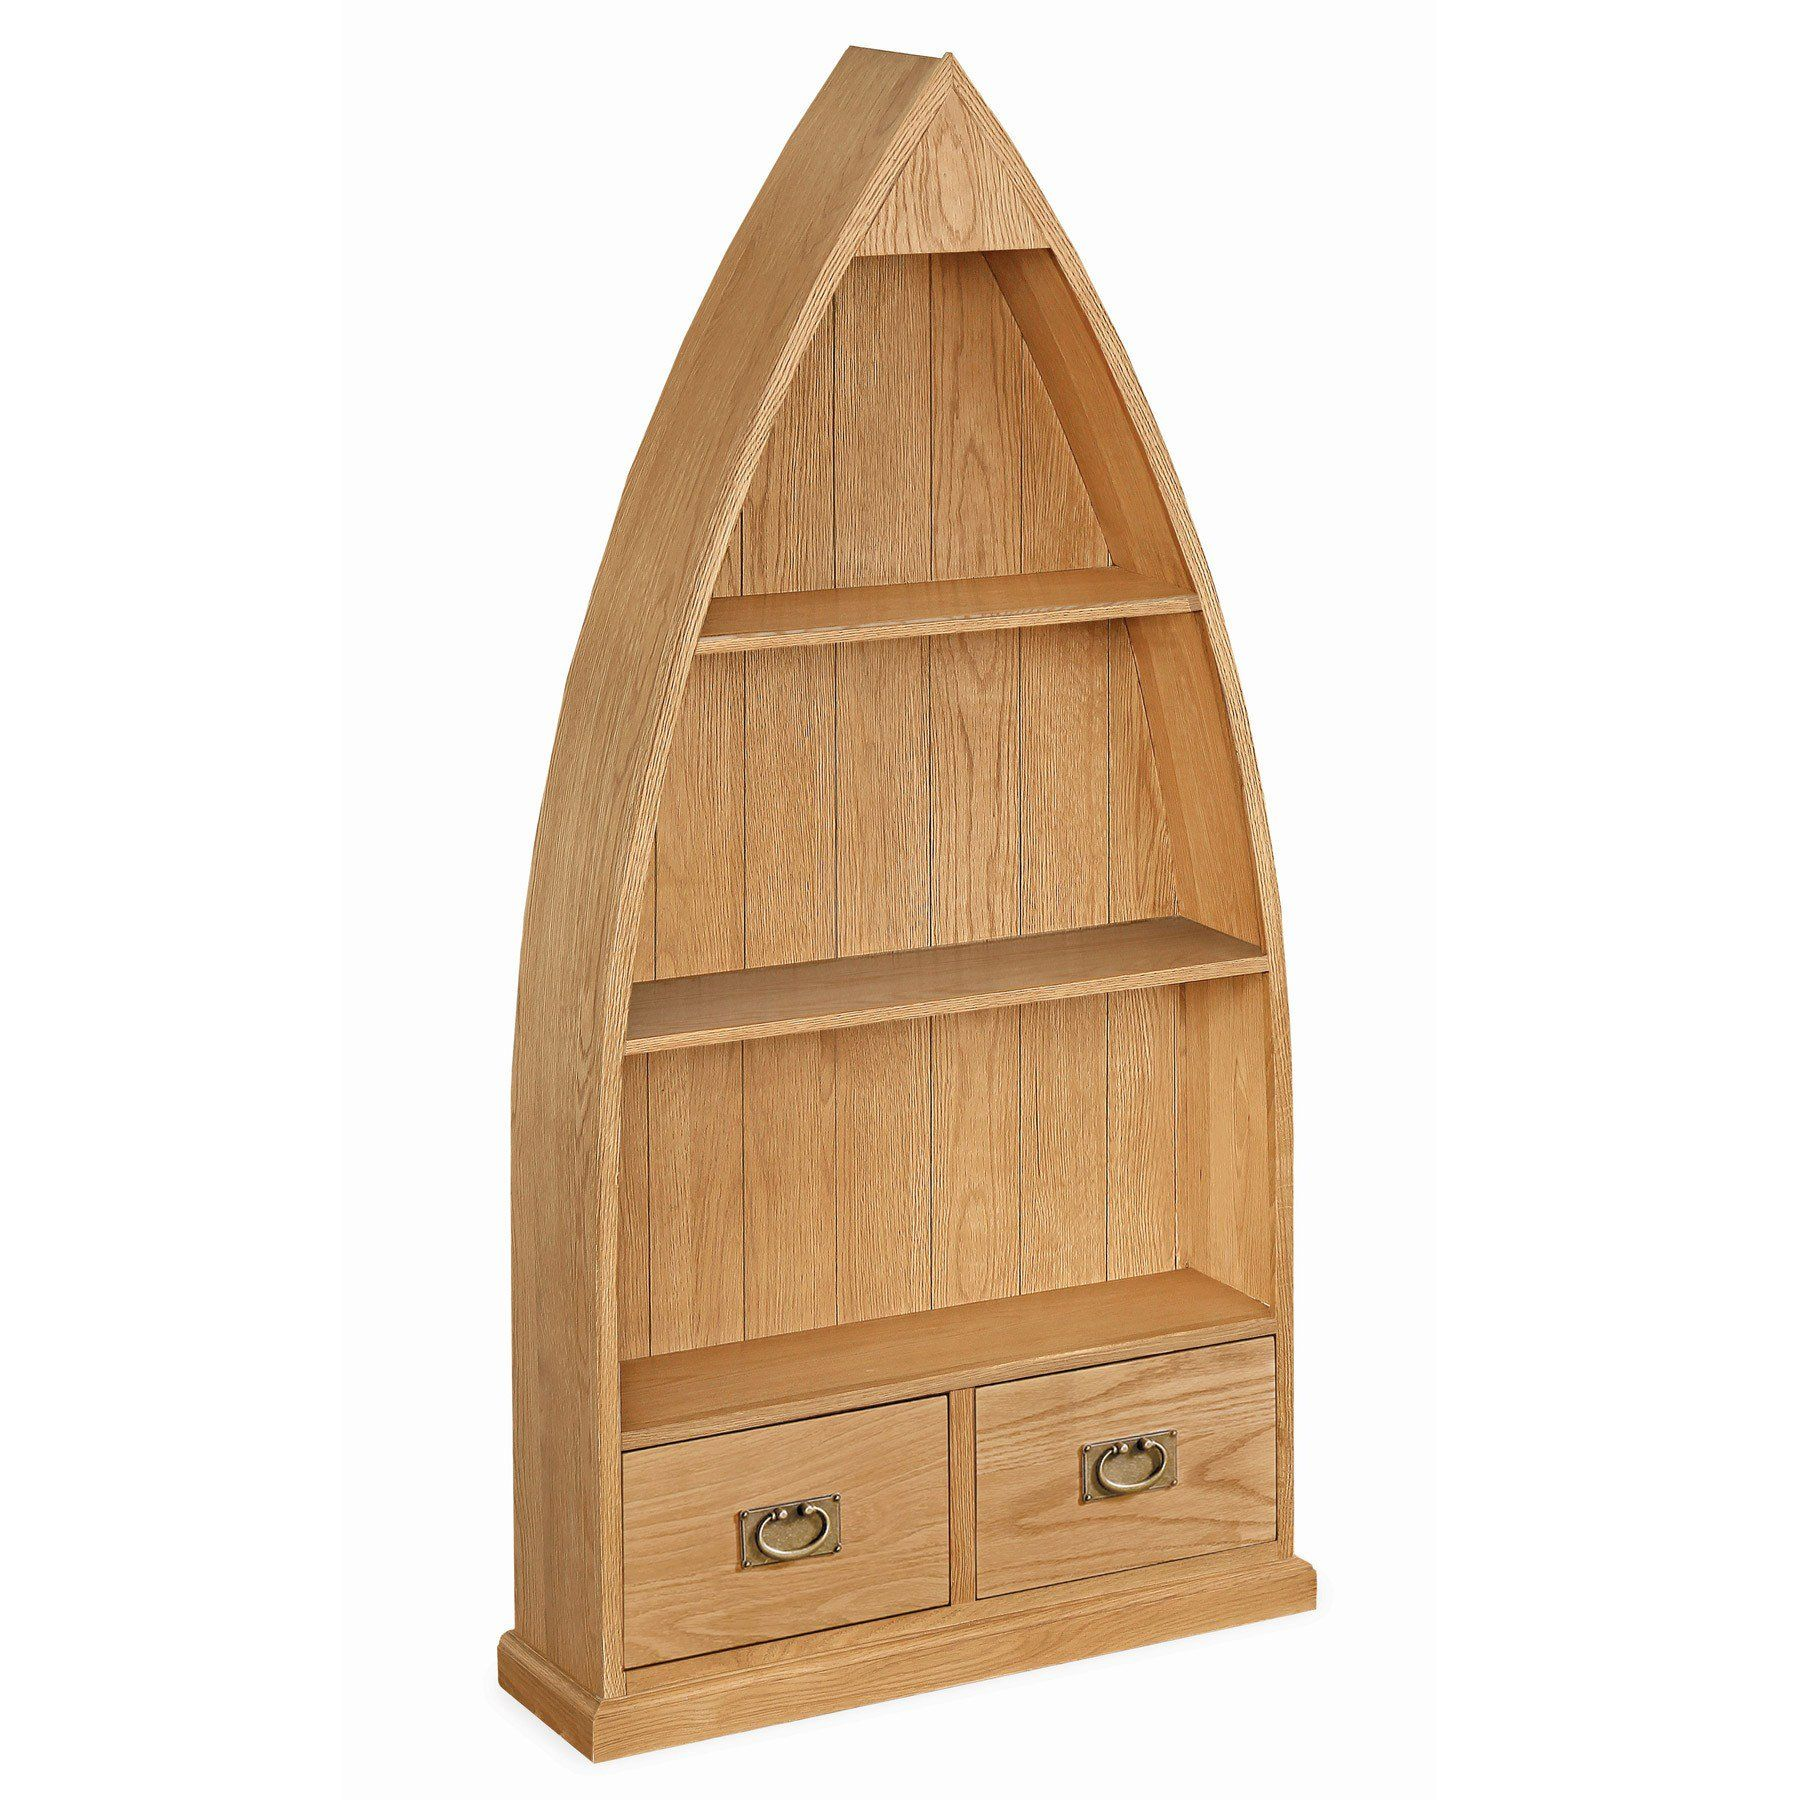 Dorset Light Oak 3 Shelf Boat Bookcase Boat Bookcase Solid Wood Shelves Bookcase